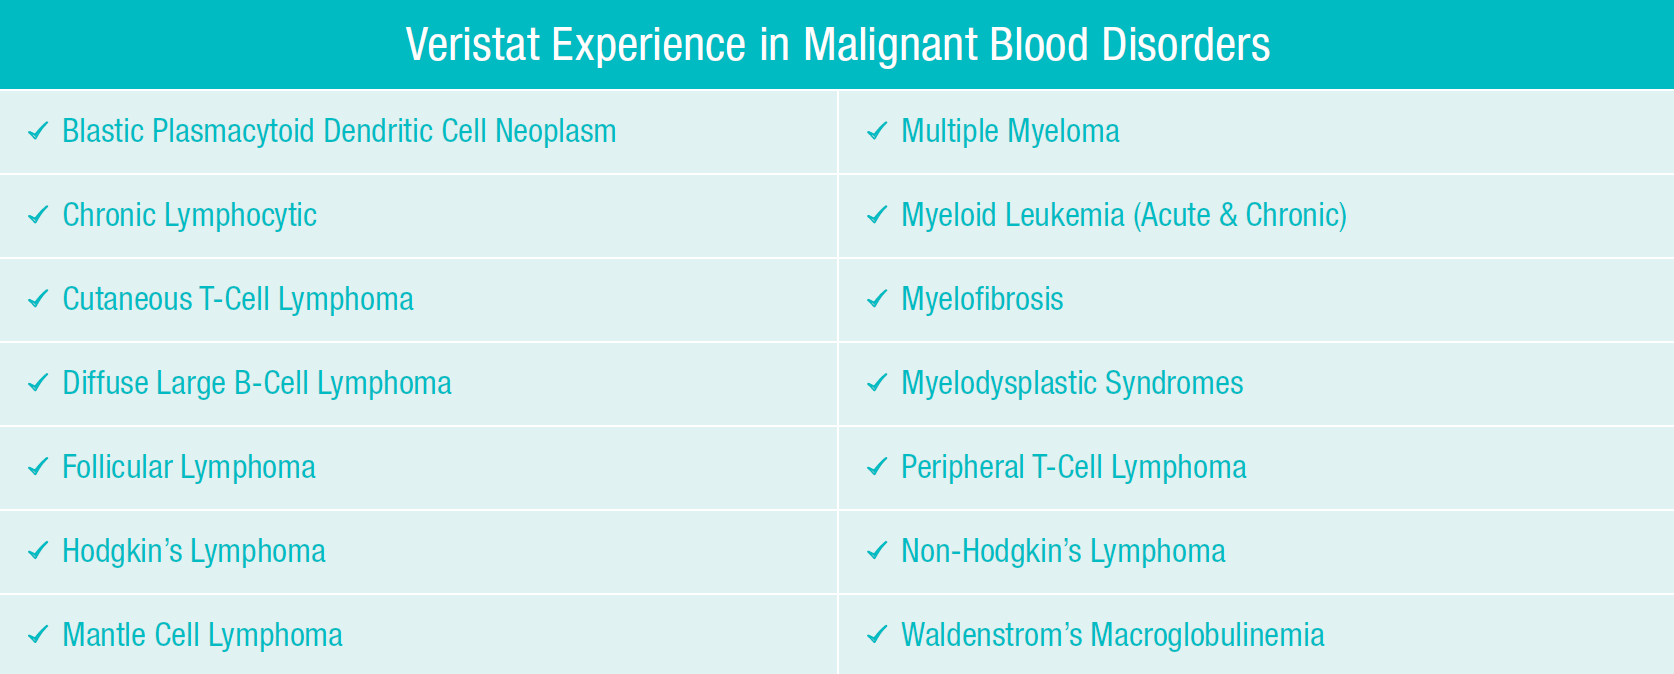 malignant_blood_disorder_table